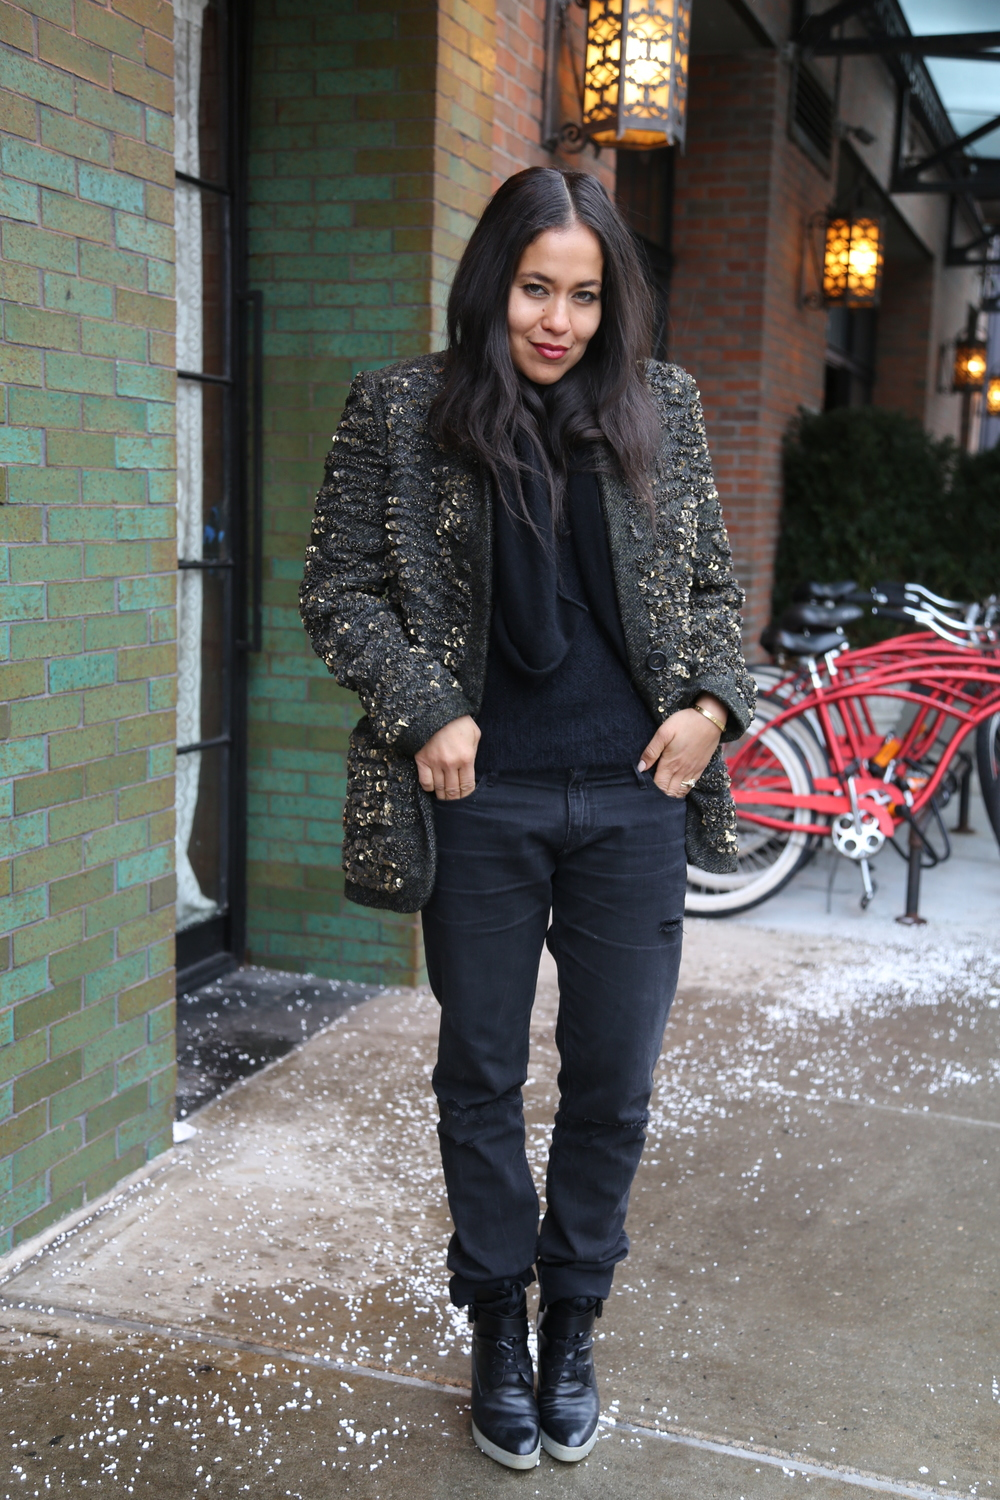 ISABEL-MARANT-TWEED-COAT-JACKET-SEQUINS-RAT-JEANS-MOHAIR-SWEATER-VANESSA-BELETIC.JPG